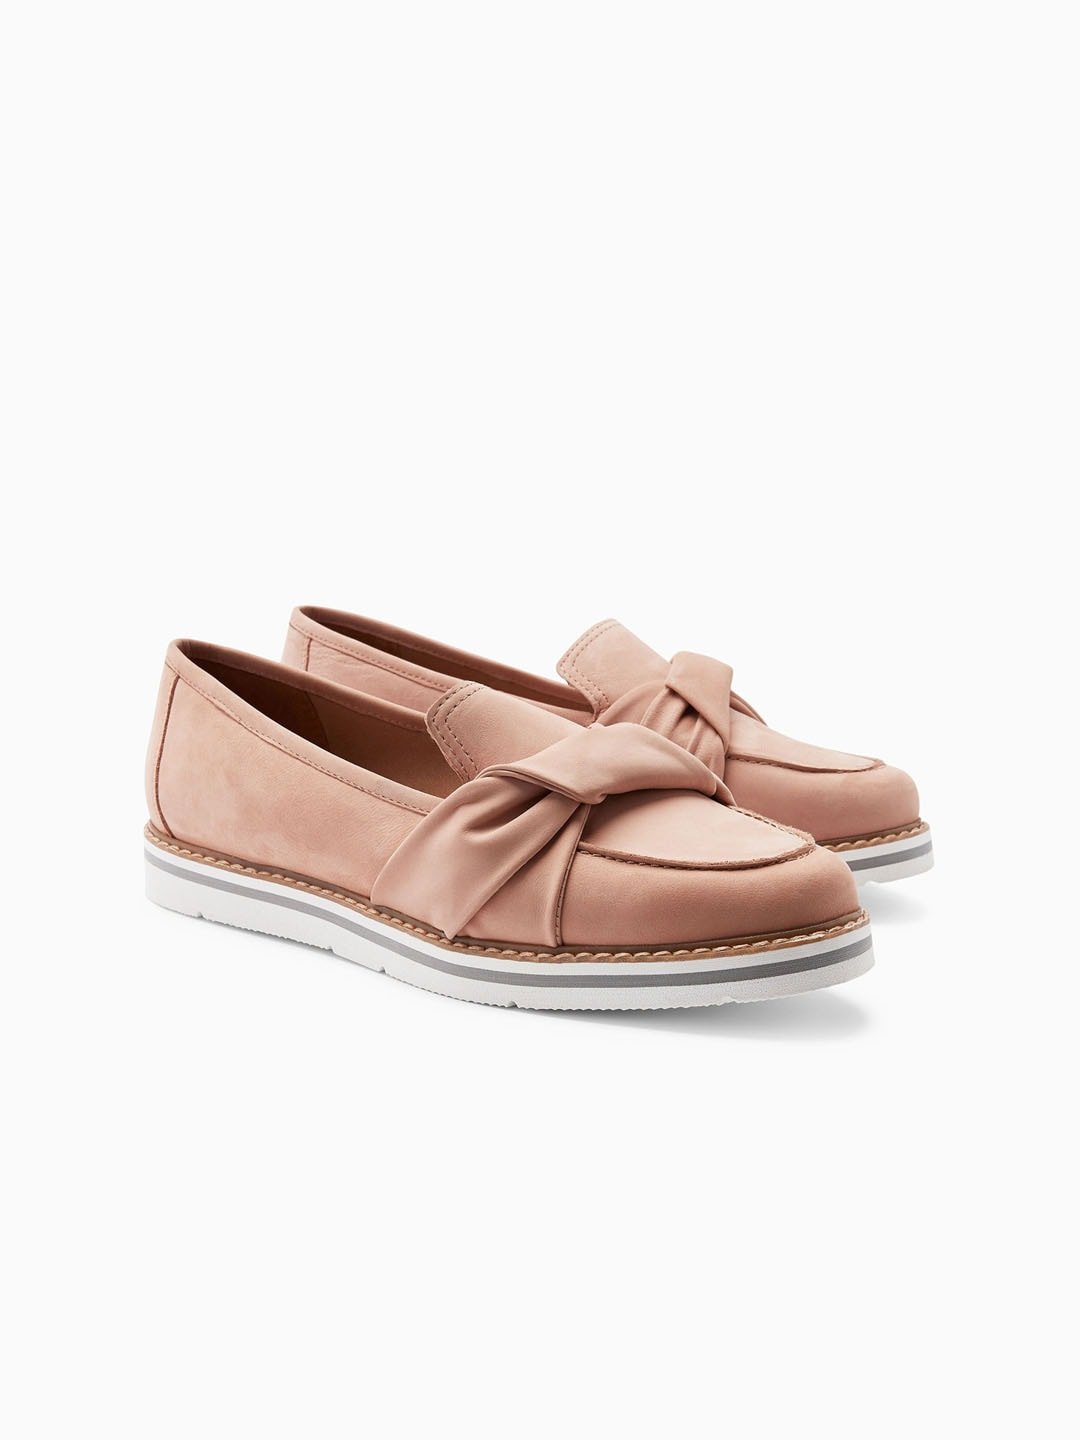 318d45608a0 Buy Mast   Harbour Women Dusty Pink Loafers With Embellished Detail ...